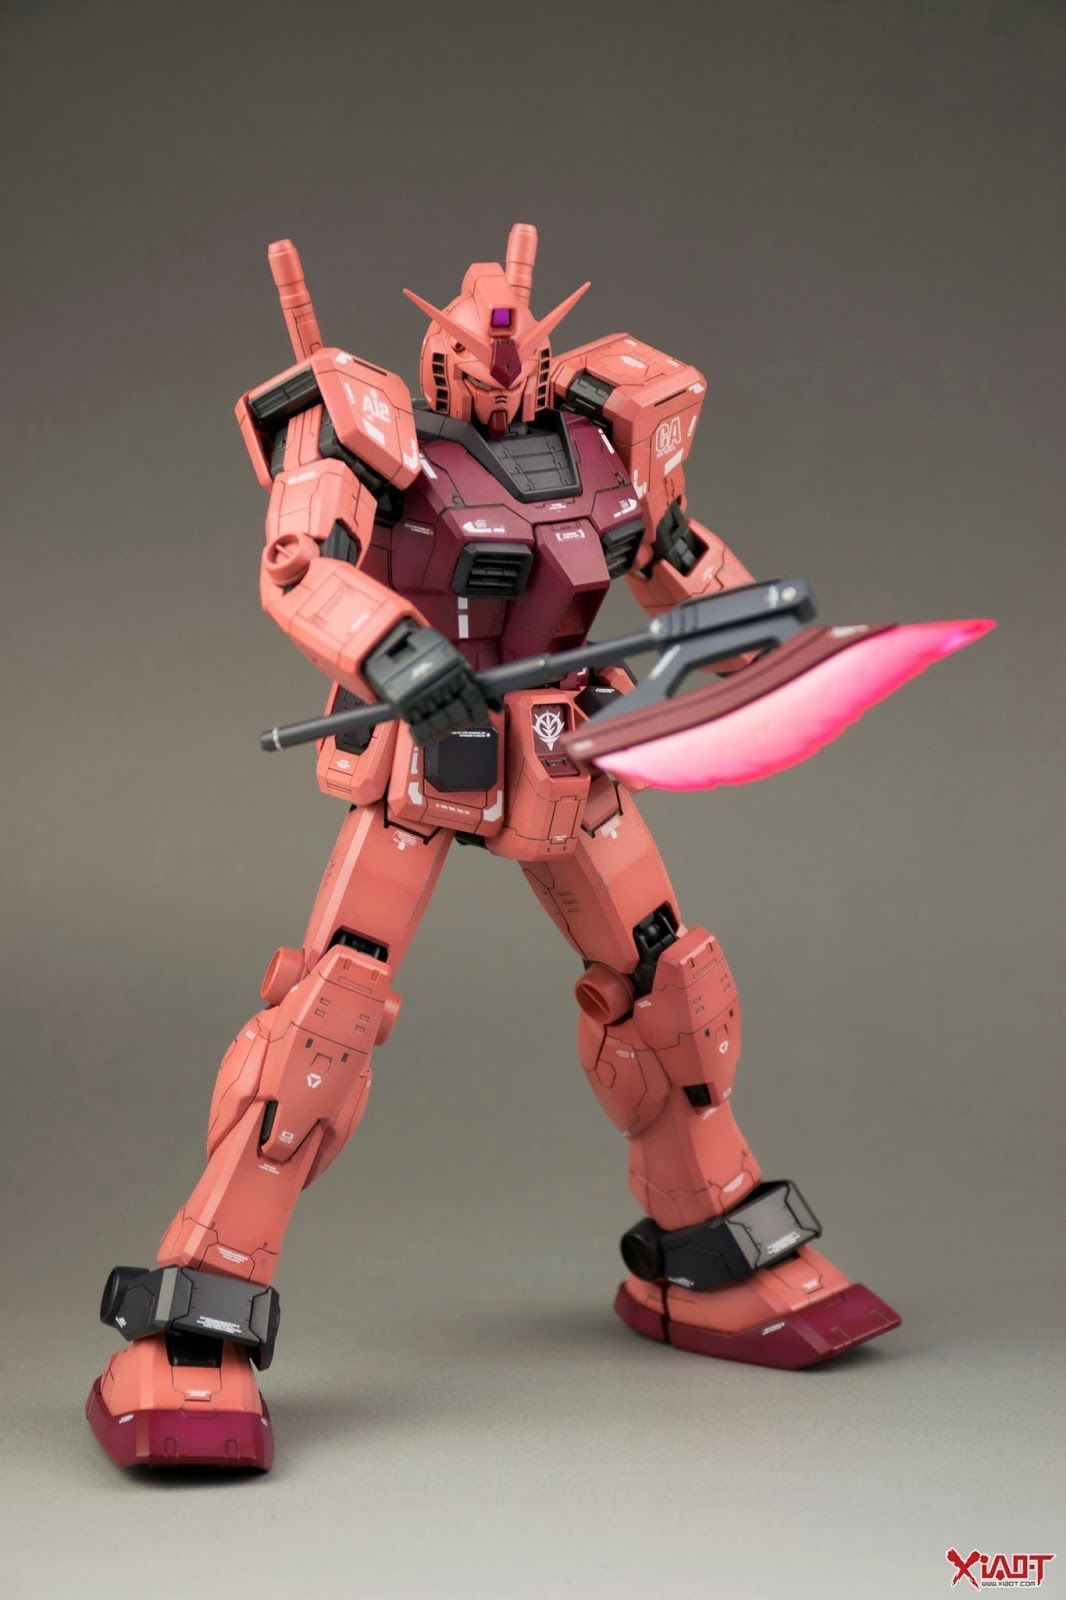 RX-78 CA GUNDAM GUY: MG 1/100 RX-78/C.A. Char Aznable's Customized Gundam